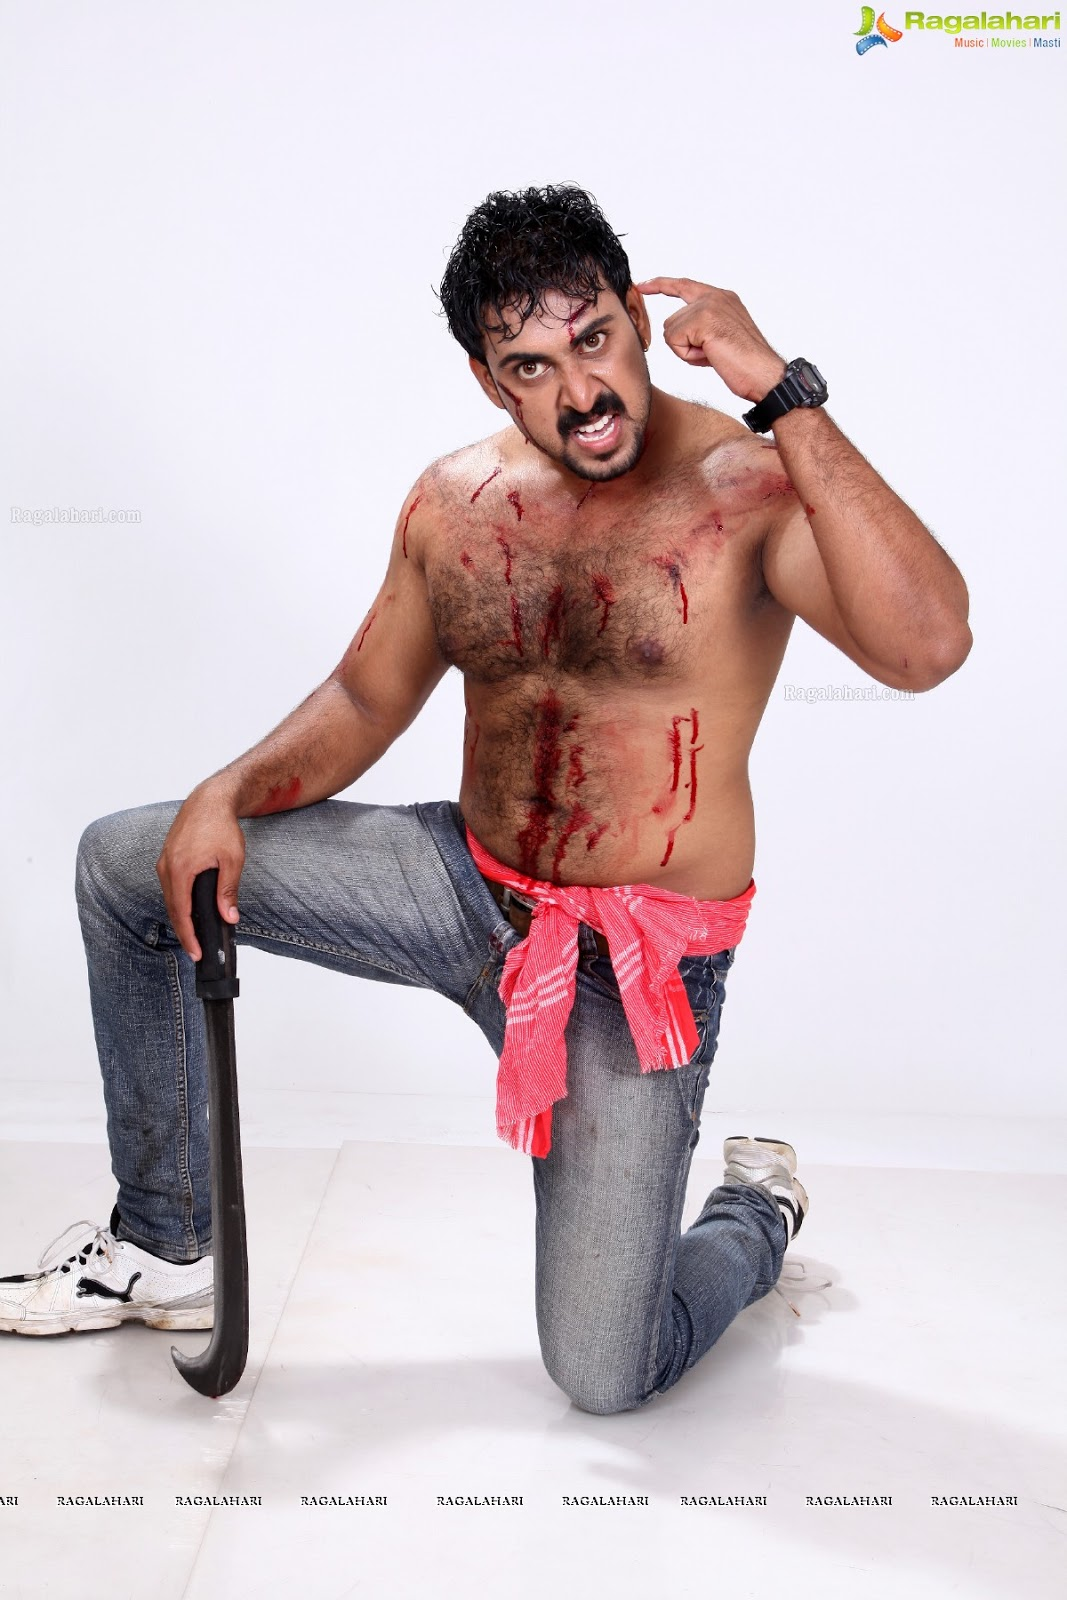 South Indian Actors Sweaty Arm Pits And Hot Pics Wow Wat -4511